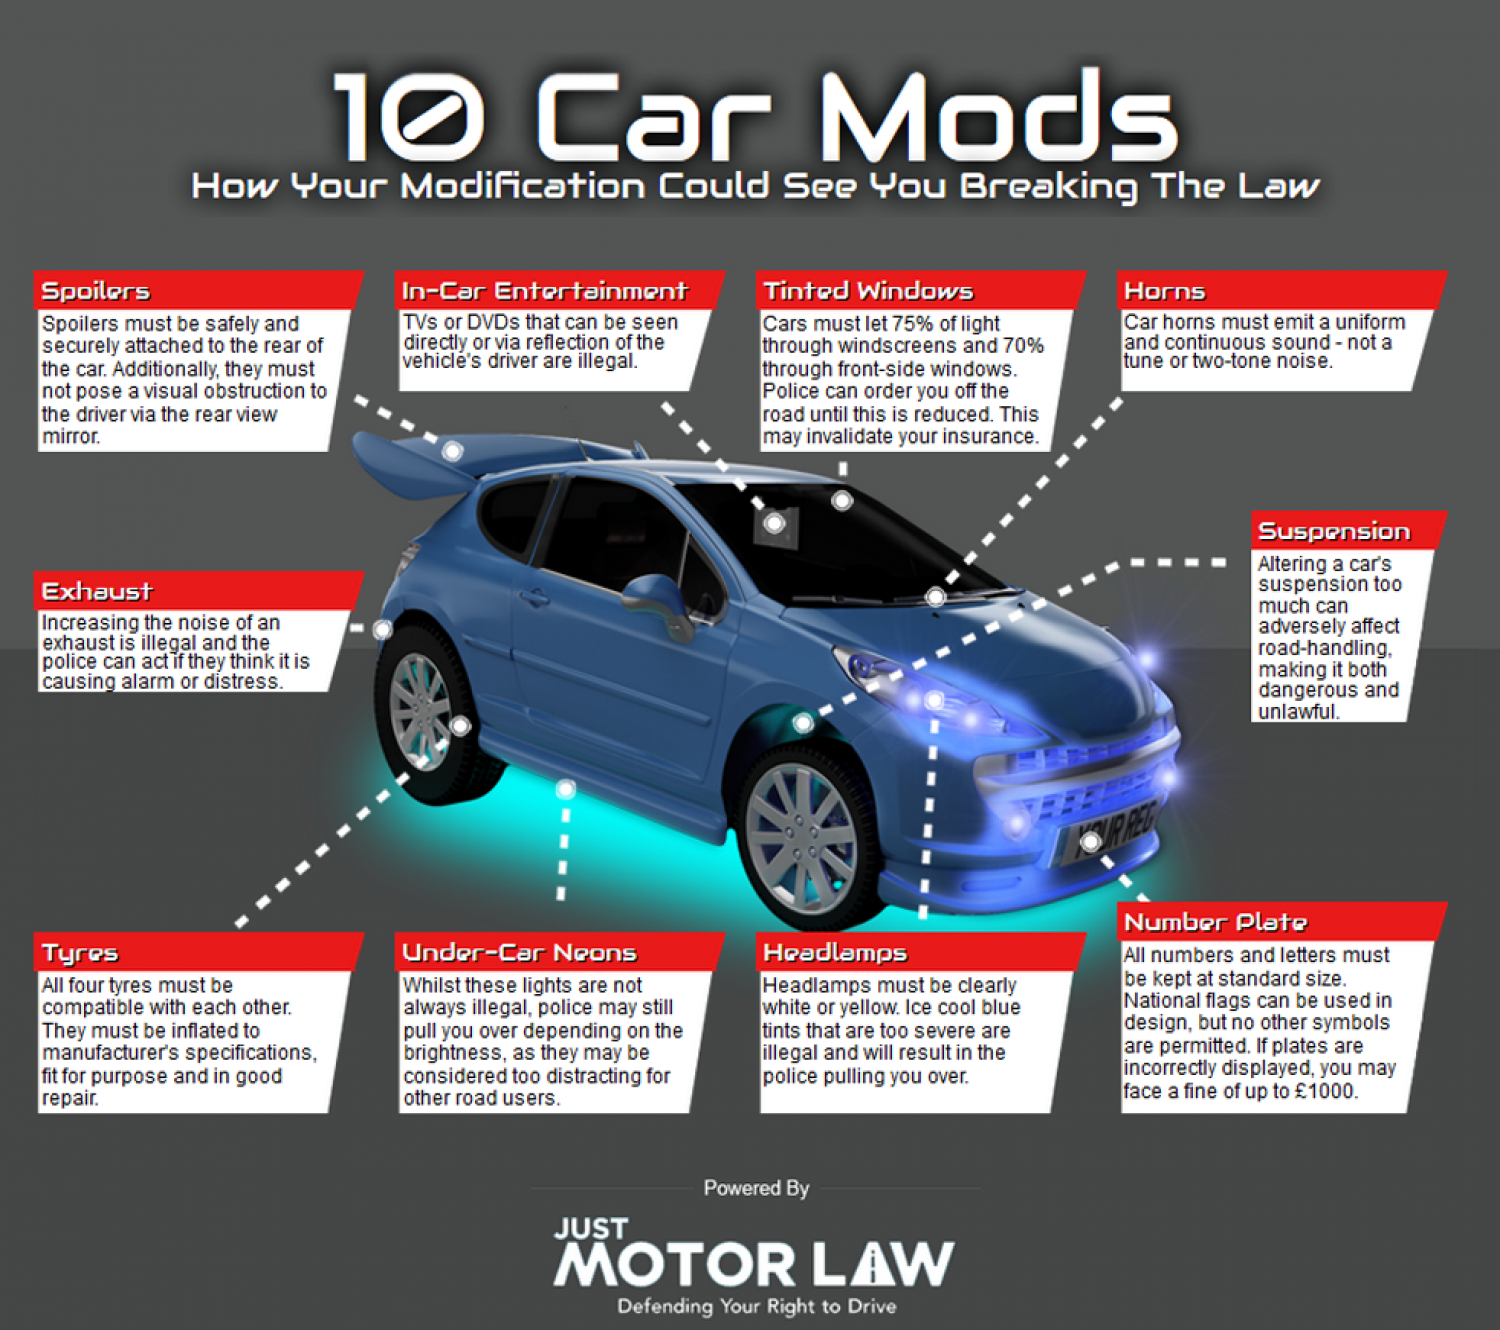 10 Car Mods: how your modification could see you breaking the law